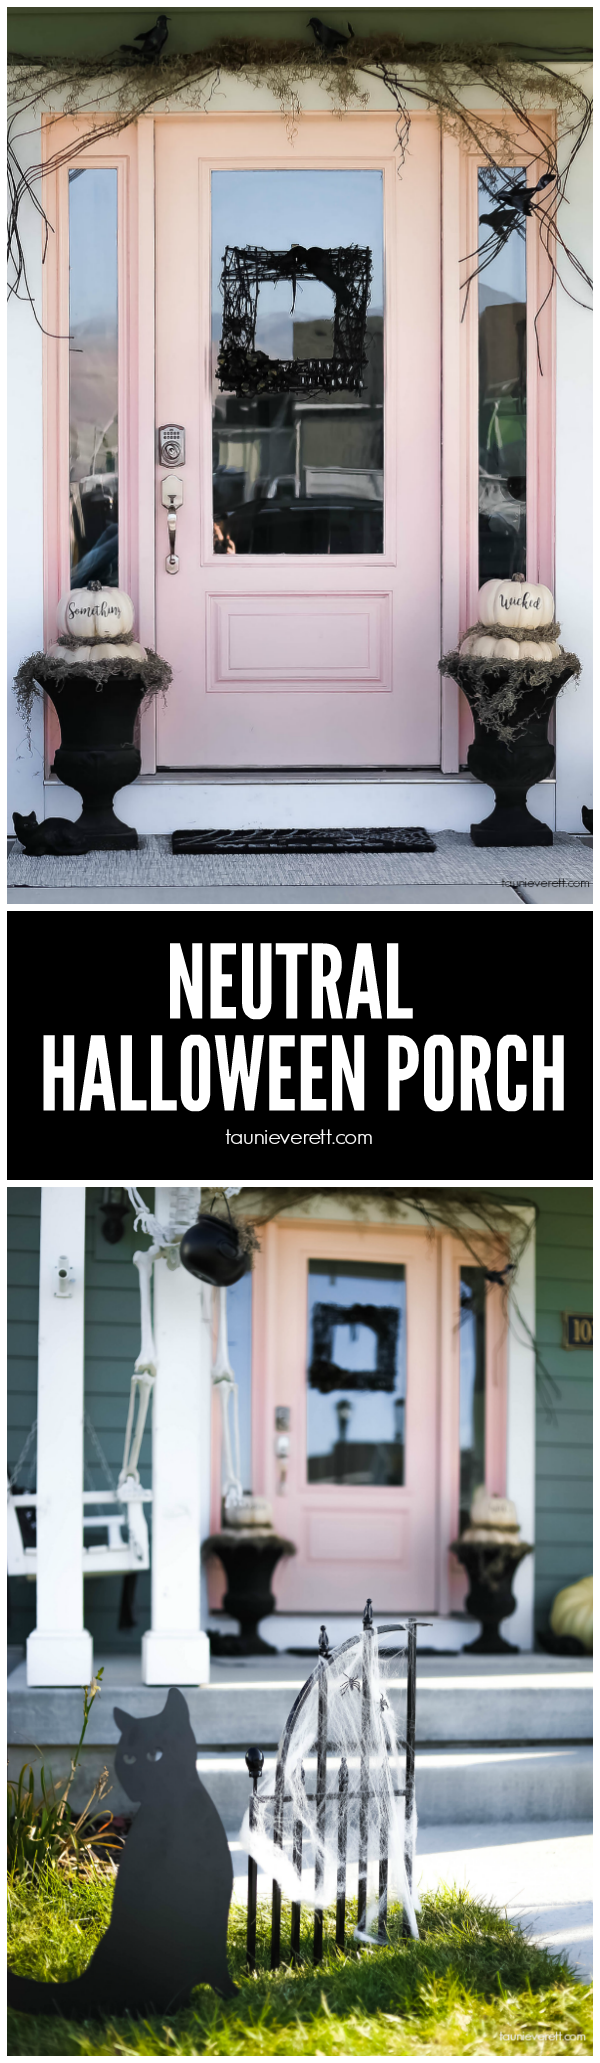 Great ideas for a neutral Halloween Porch